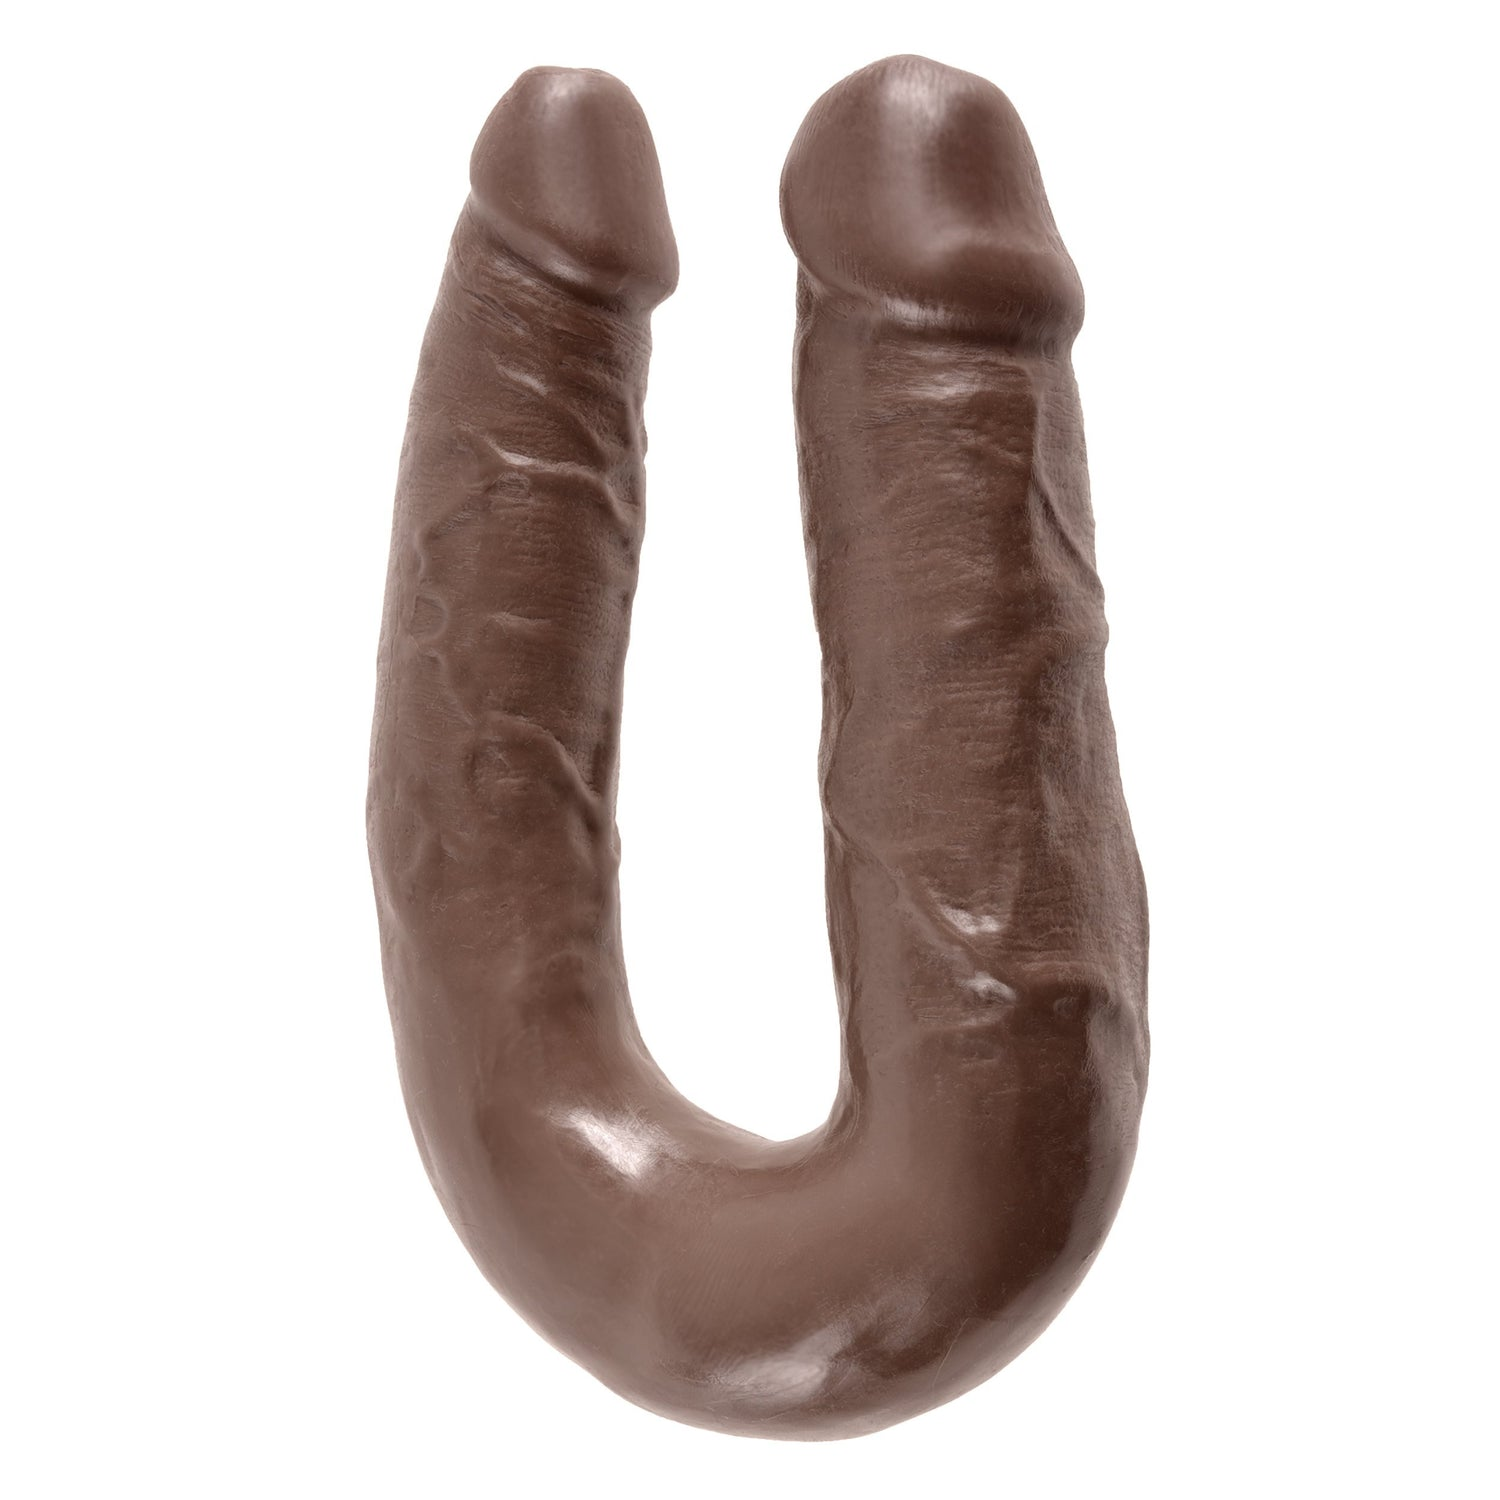 Pipedream - King Cock Double Trouble Dildo Medium (Brown) Double Dildo (Non Vibration) Singapore